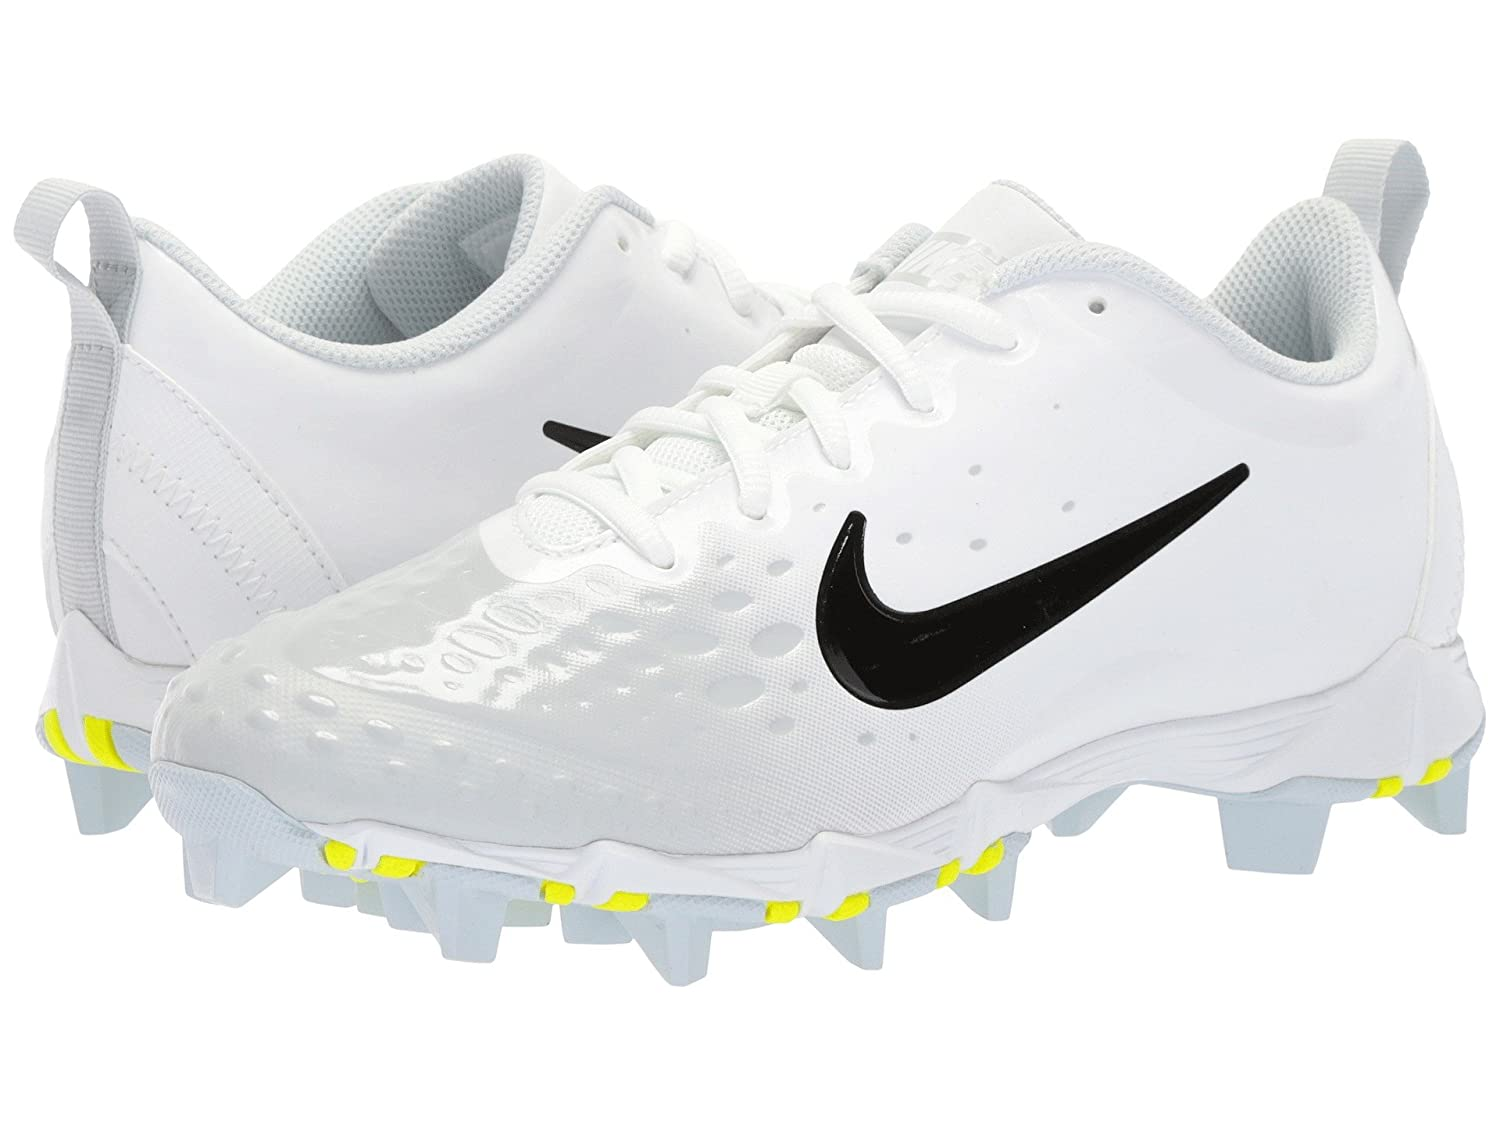 (ナイキ) NIKE レディース野球ベースボールソフトボールシューズ Hyperdiamond 2 Keystone White/Black/Pure Platinum/Pure Platinum 9 (26cm) B Medium B078Q22XZZ